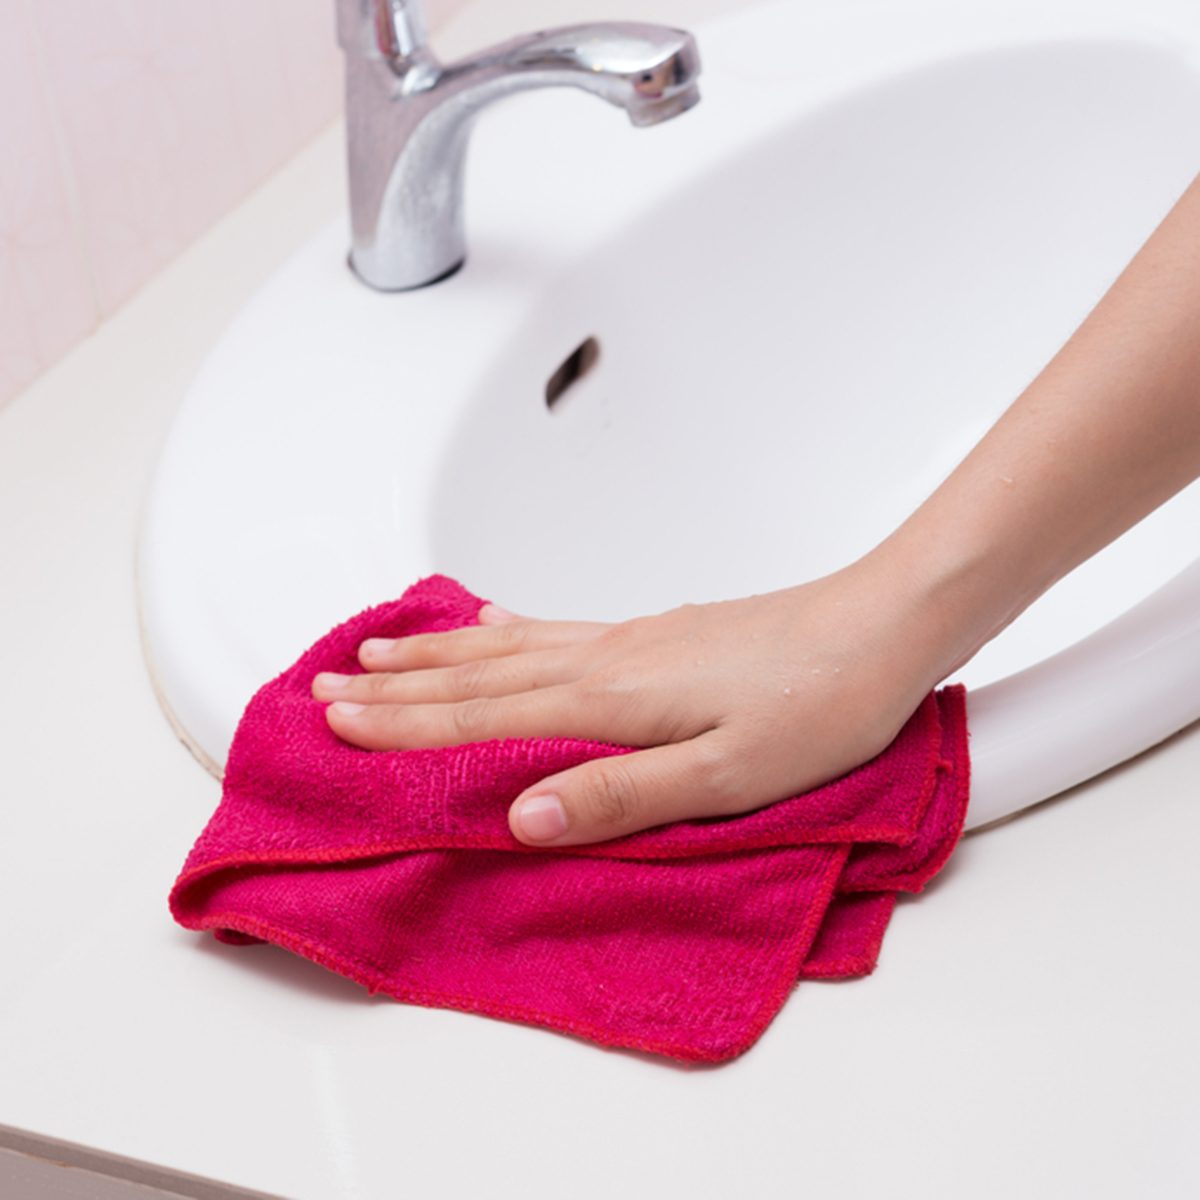 Hand with sponge cleaning white sink.; Shutterstock ID 218603473; Job (TFH, TOH, RD, BNB, CWM, CM): TOH